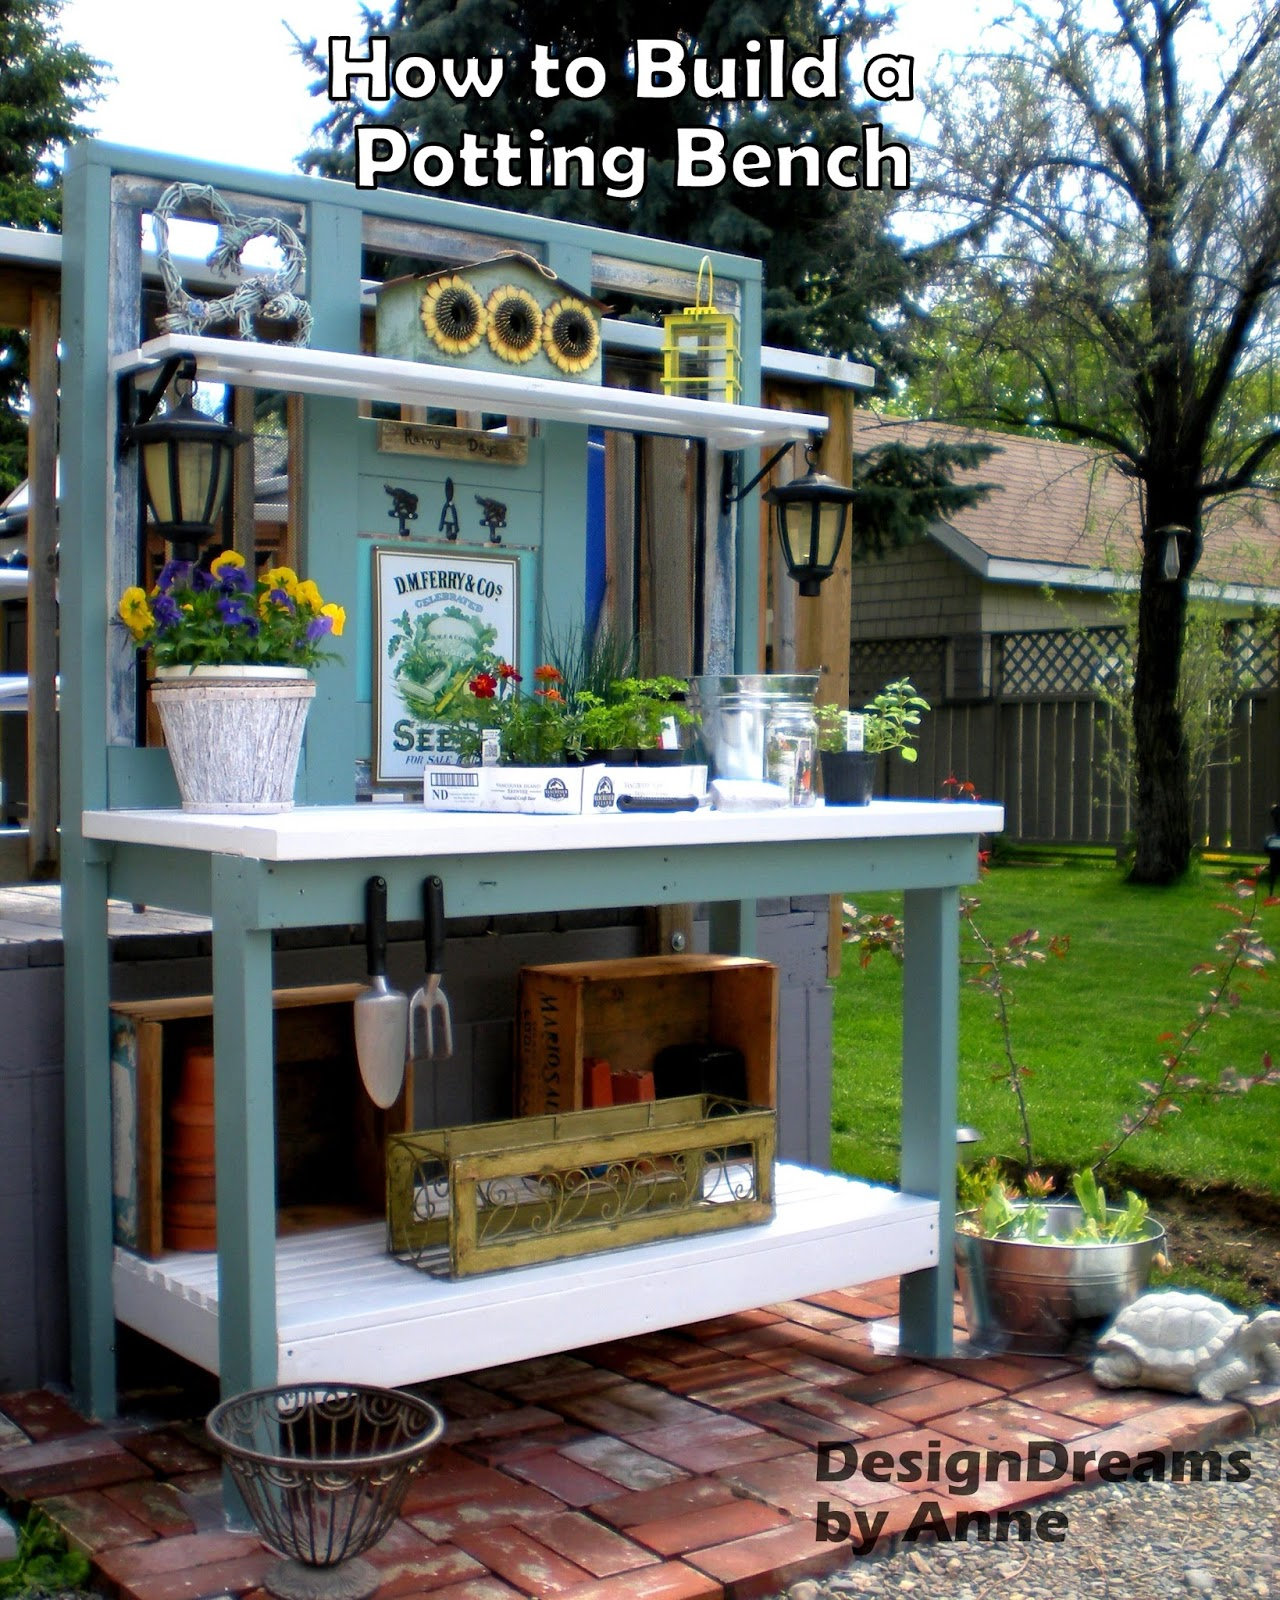 DIY+Potting+Bench Potting Bench Table